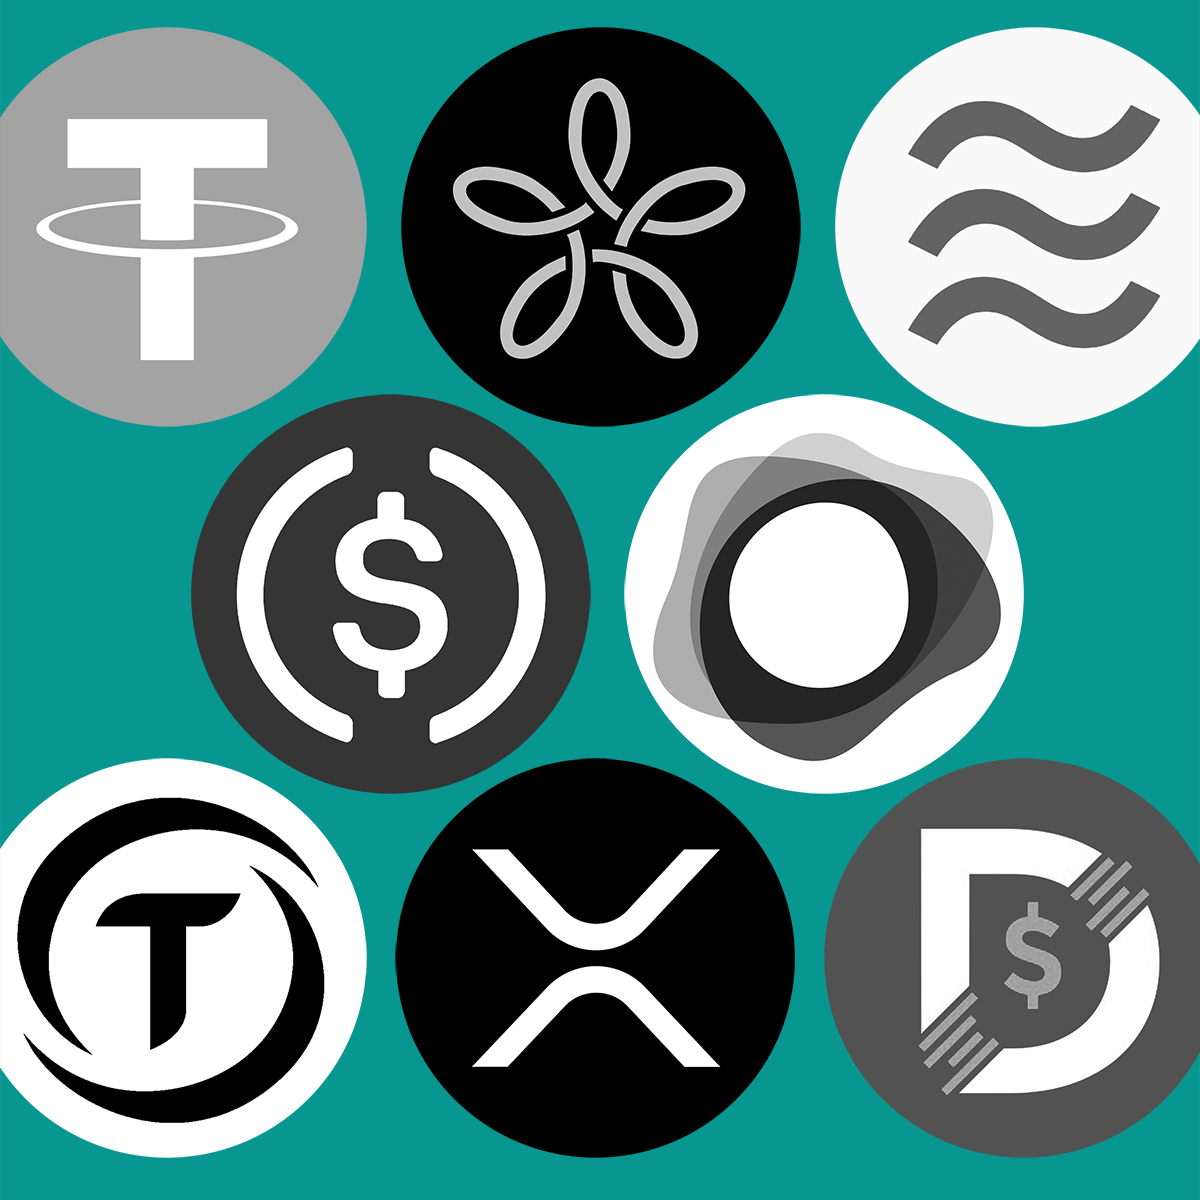 Illustration of different stablecoins